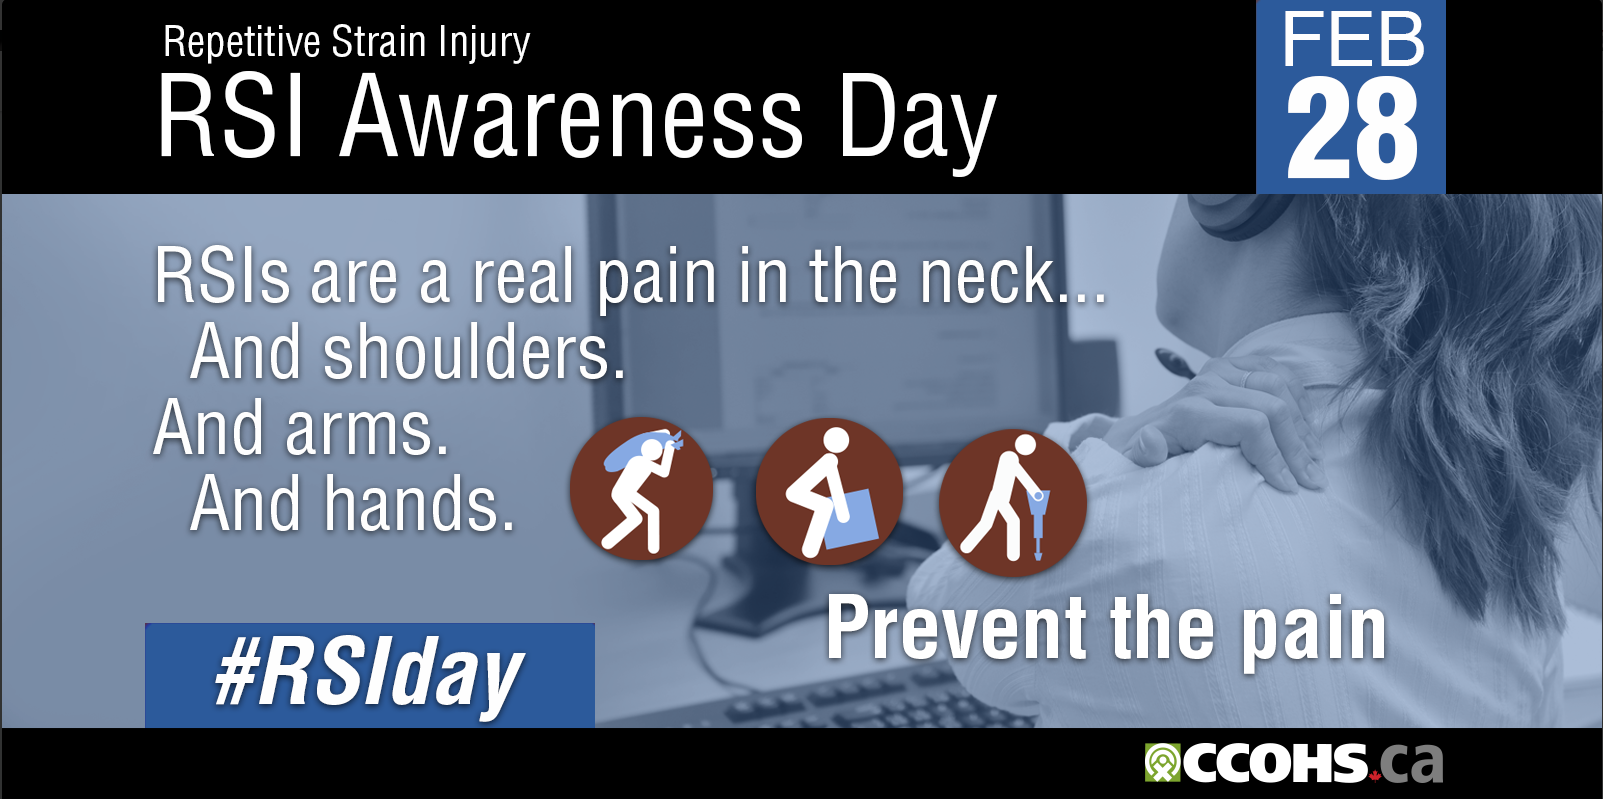 February 28 is Repetitive Strain Injury - RSI Awareness Day. RSIs are a real pain in the neck...And shoulders.